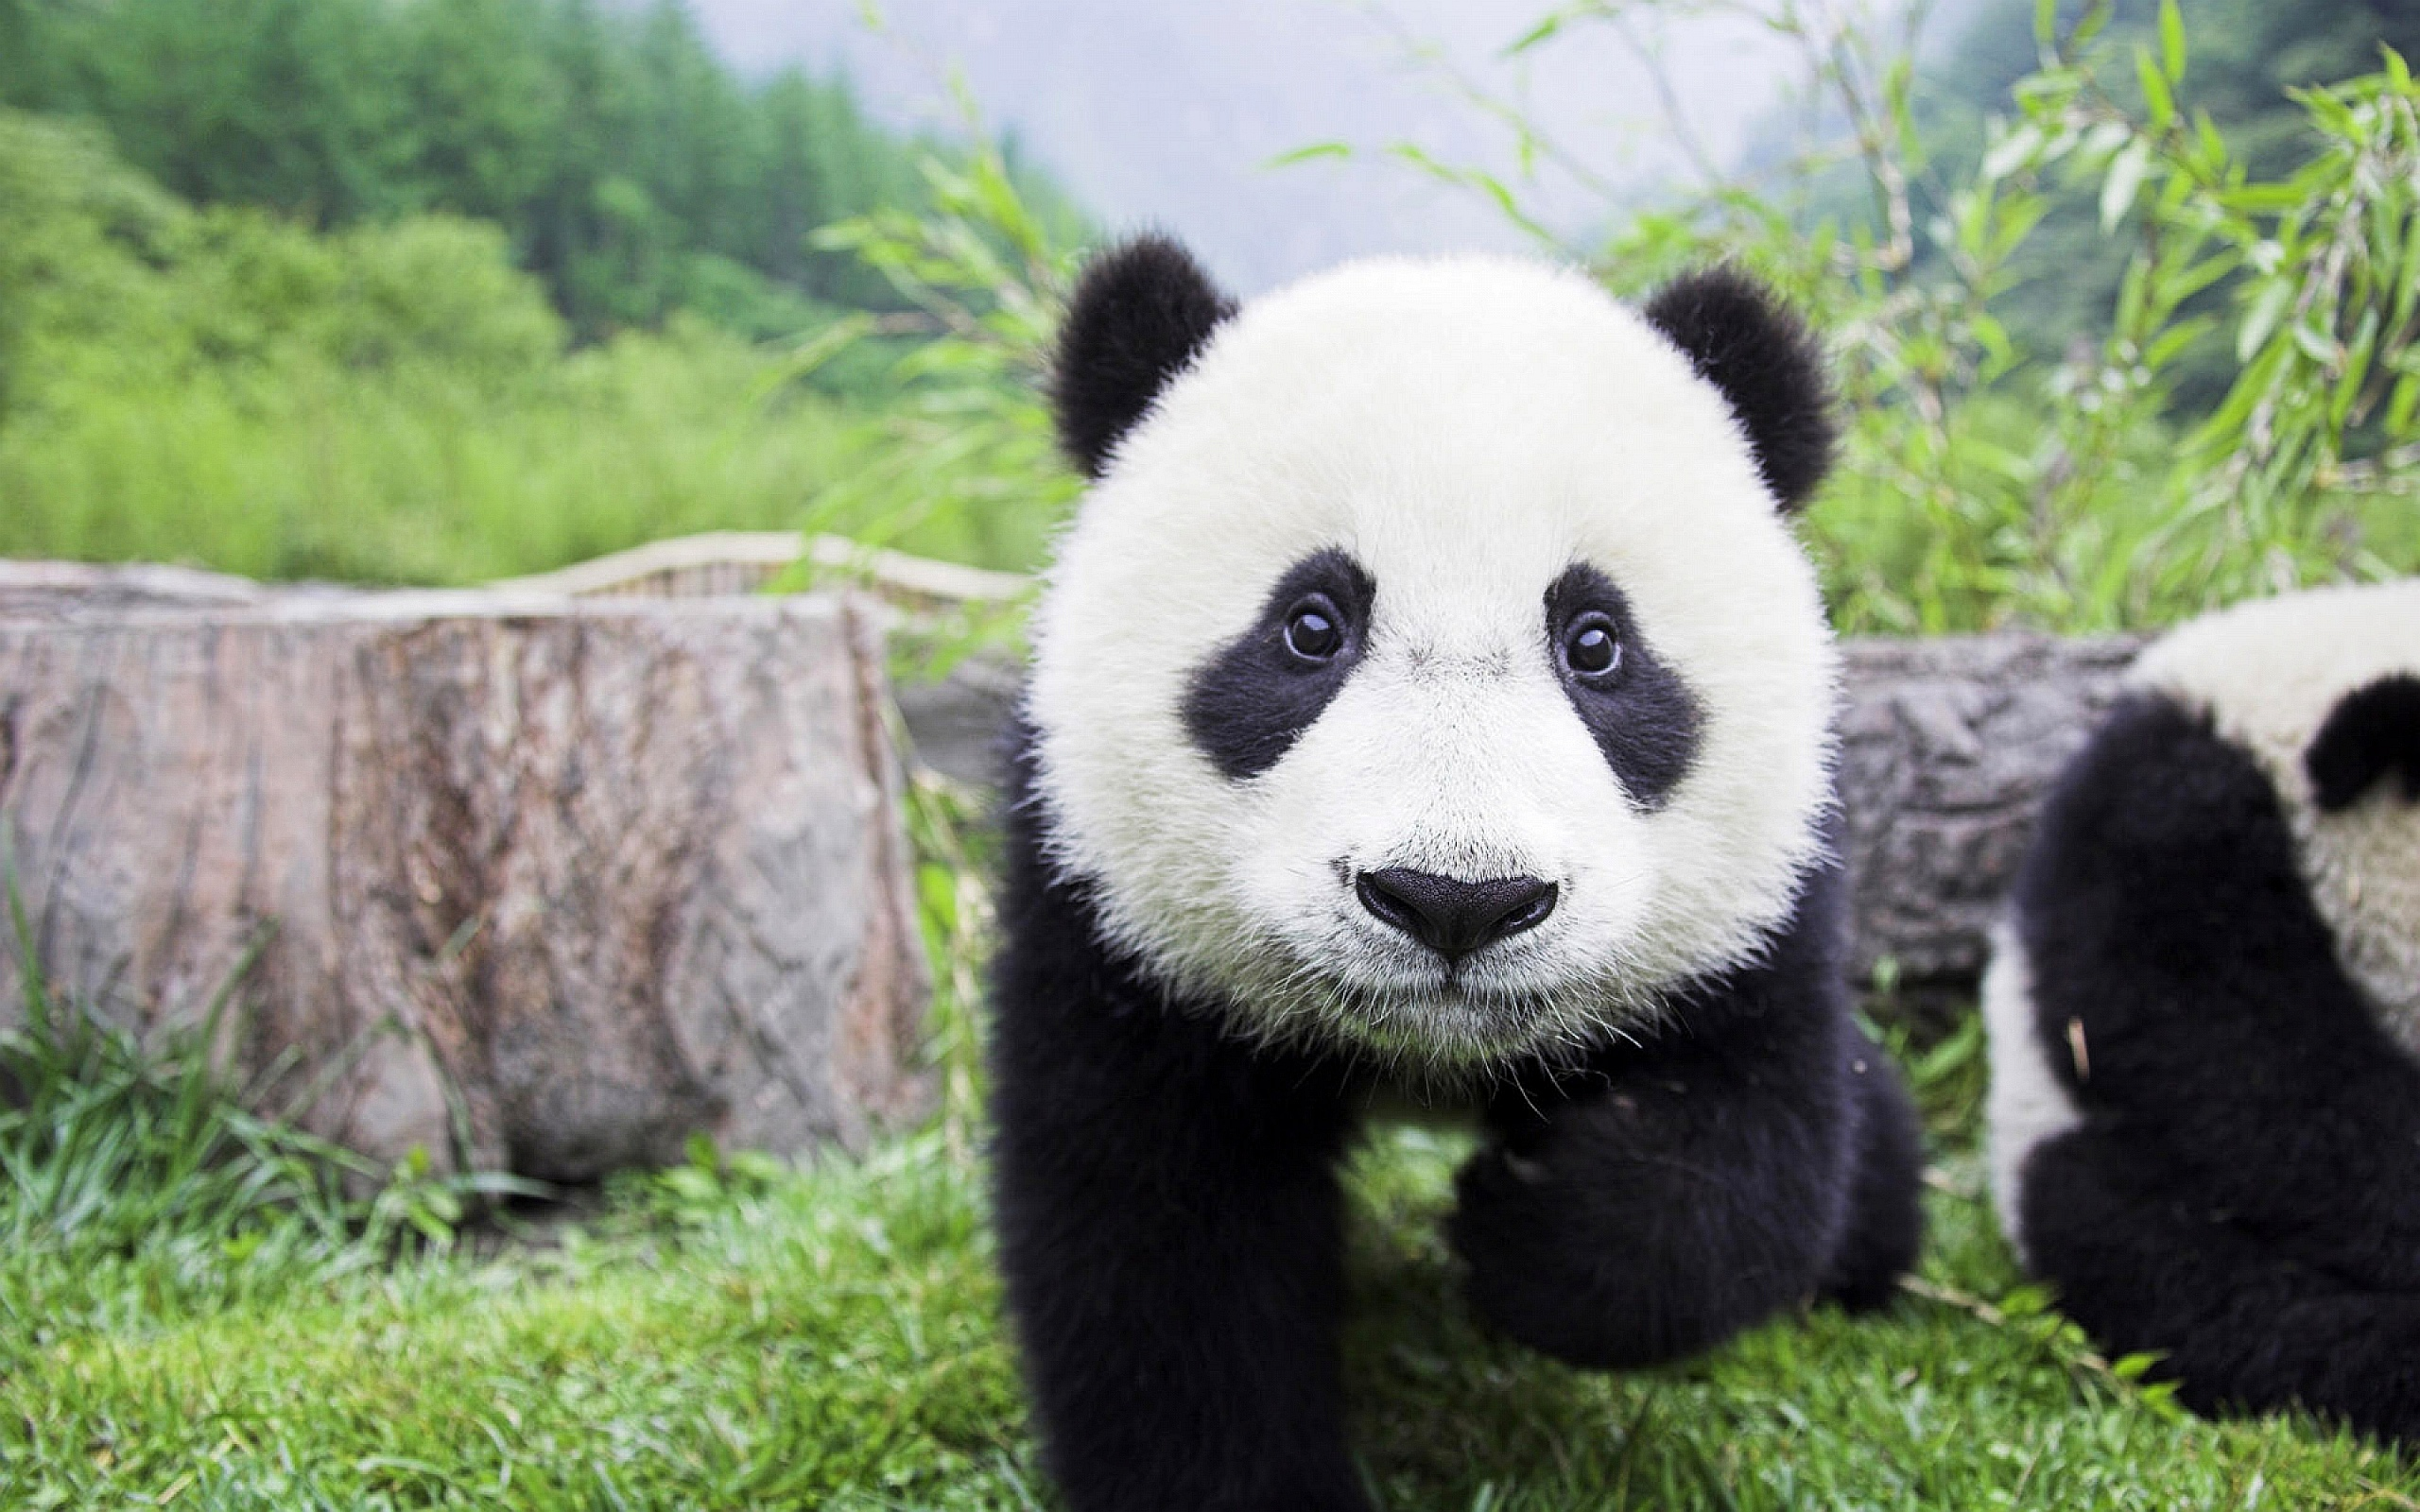 Cute Panda Bears - Animals Photo (34915025) - Fanpop